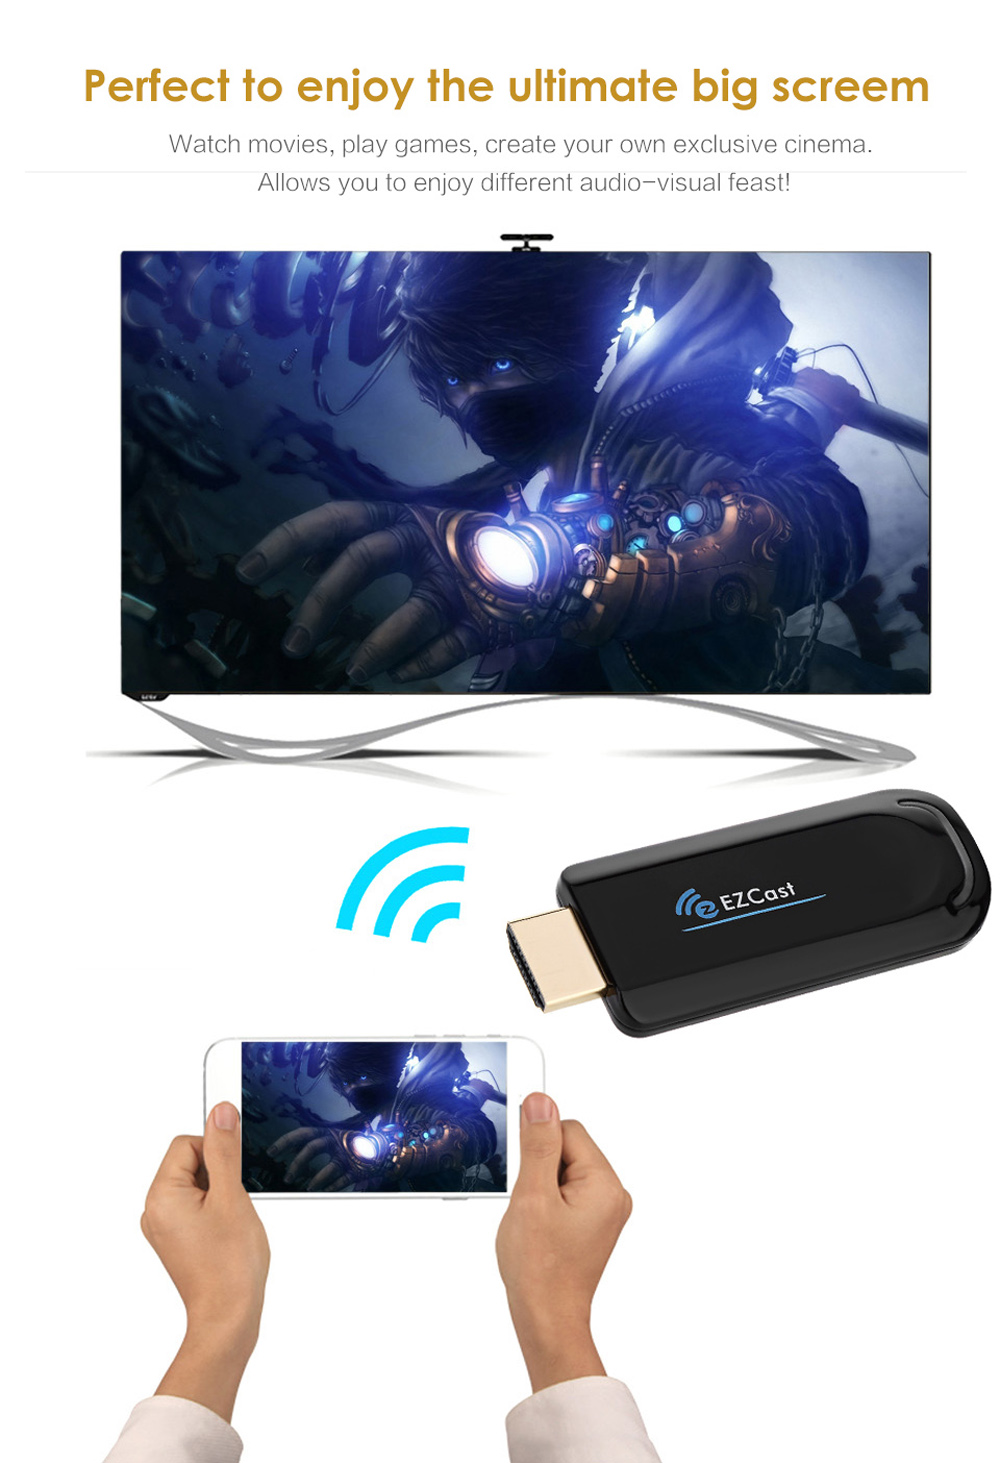 EZCast TV Dongle Wireless Dual Band 5GHz 2.4GHz WiFi HDMI DLNA Miracast Display Airplay Receiver